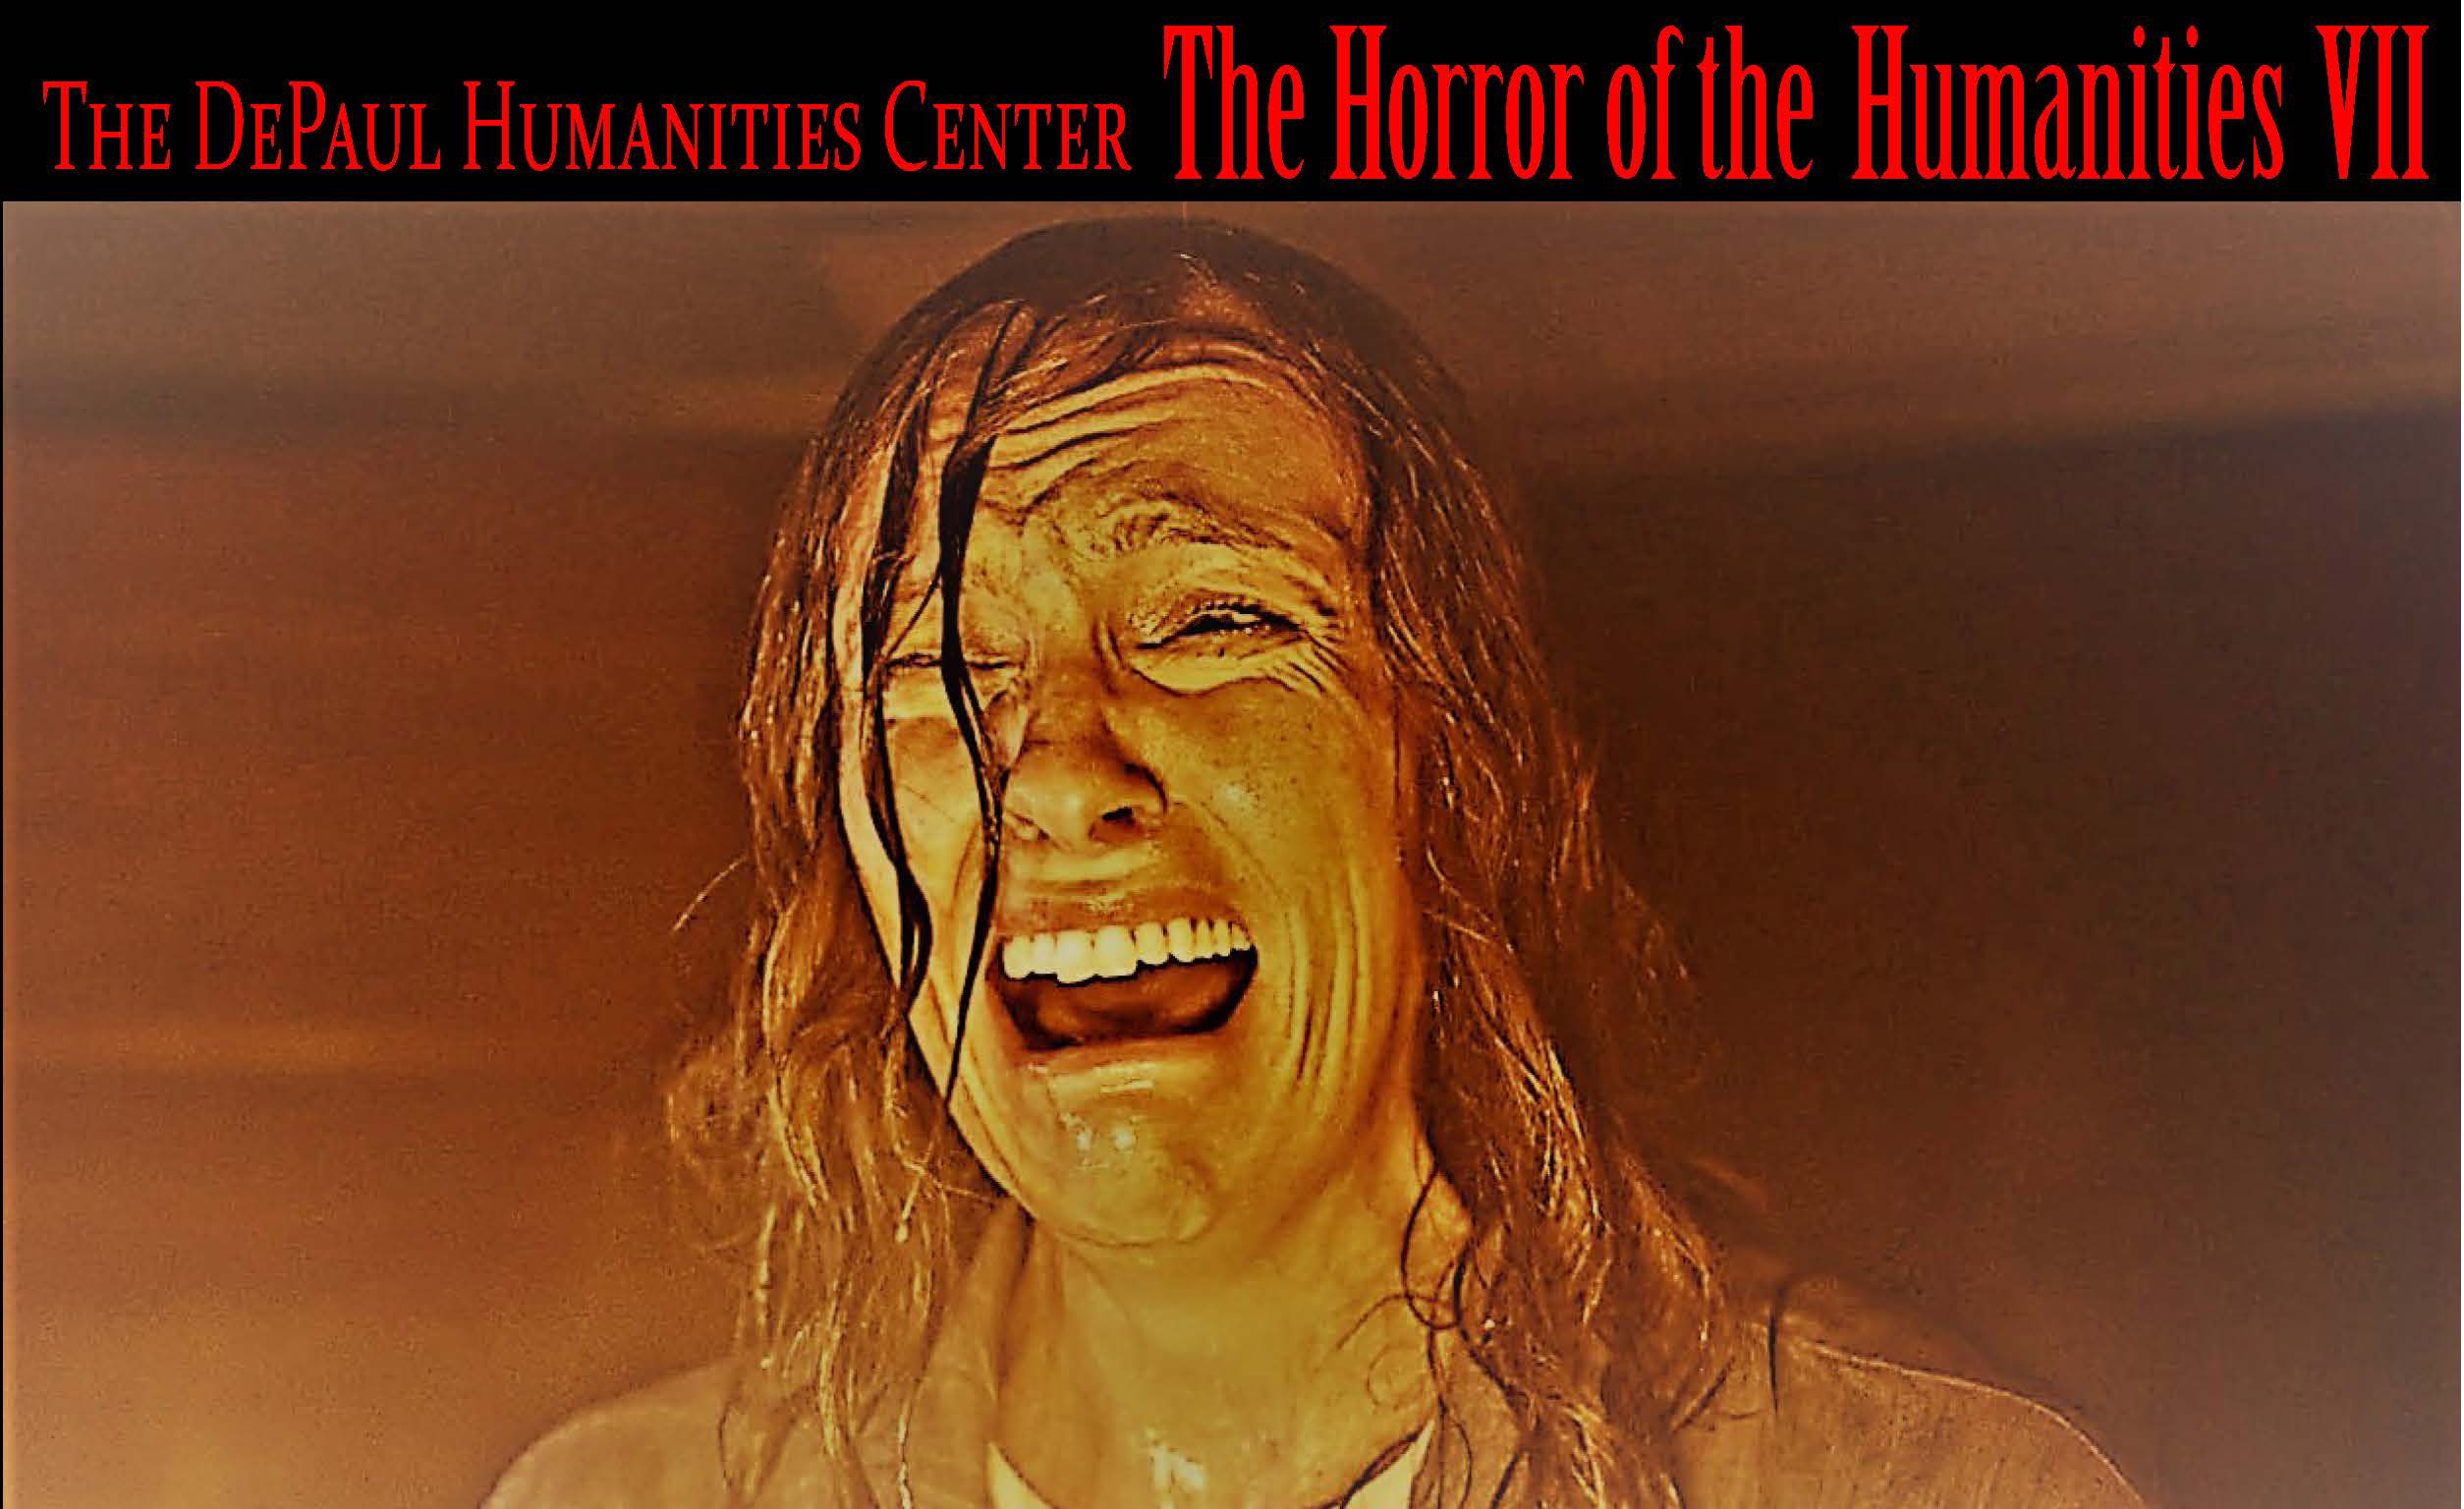 poster image of Horror of the Humanities at DePaul University